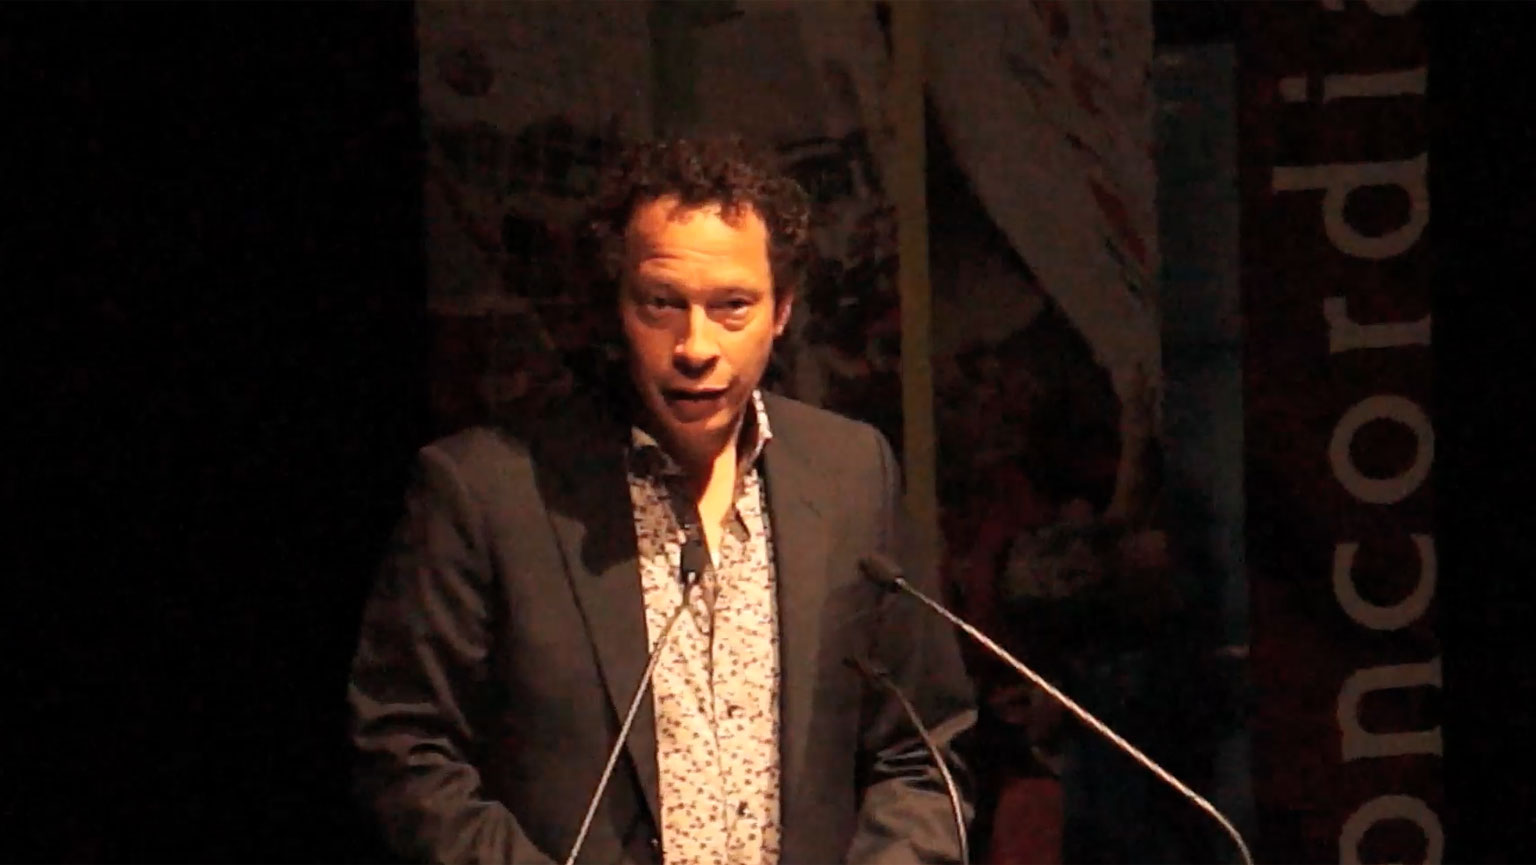 Video still of Lawrence Hill from The Walrus Talks Being Human